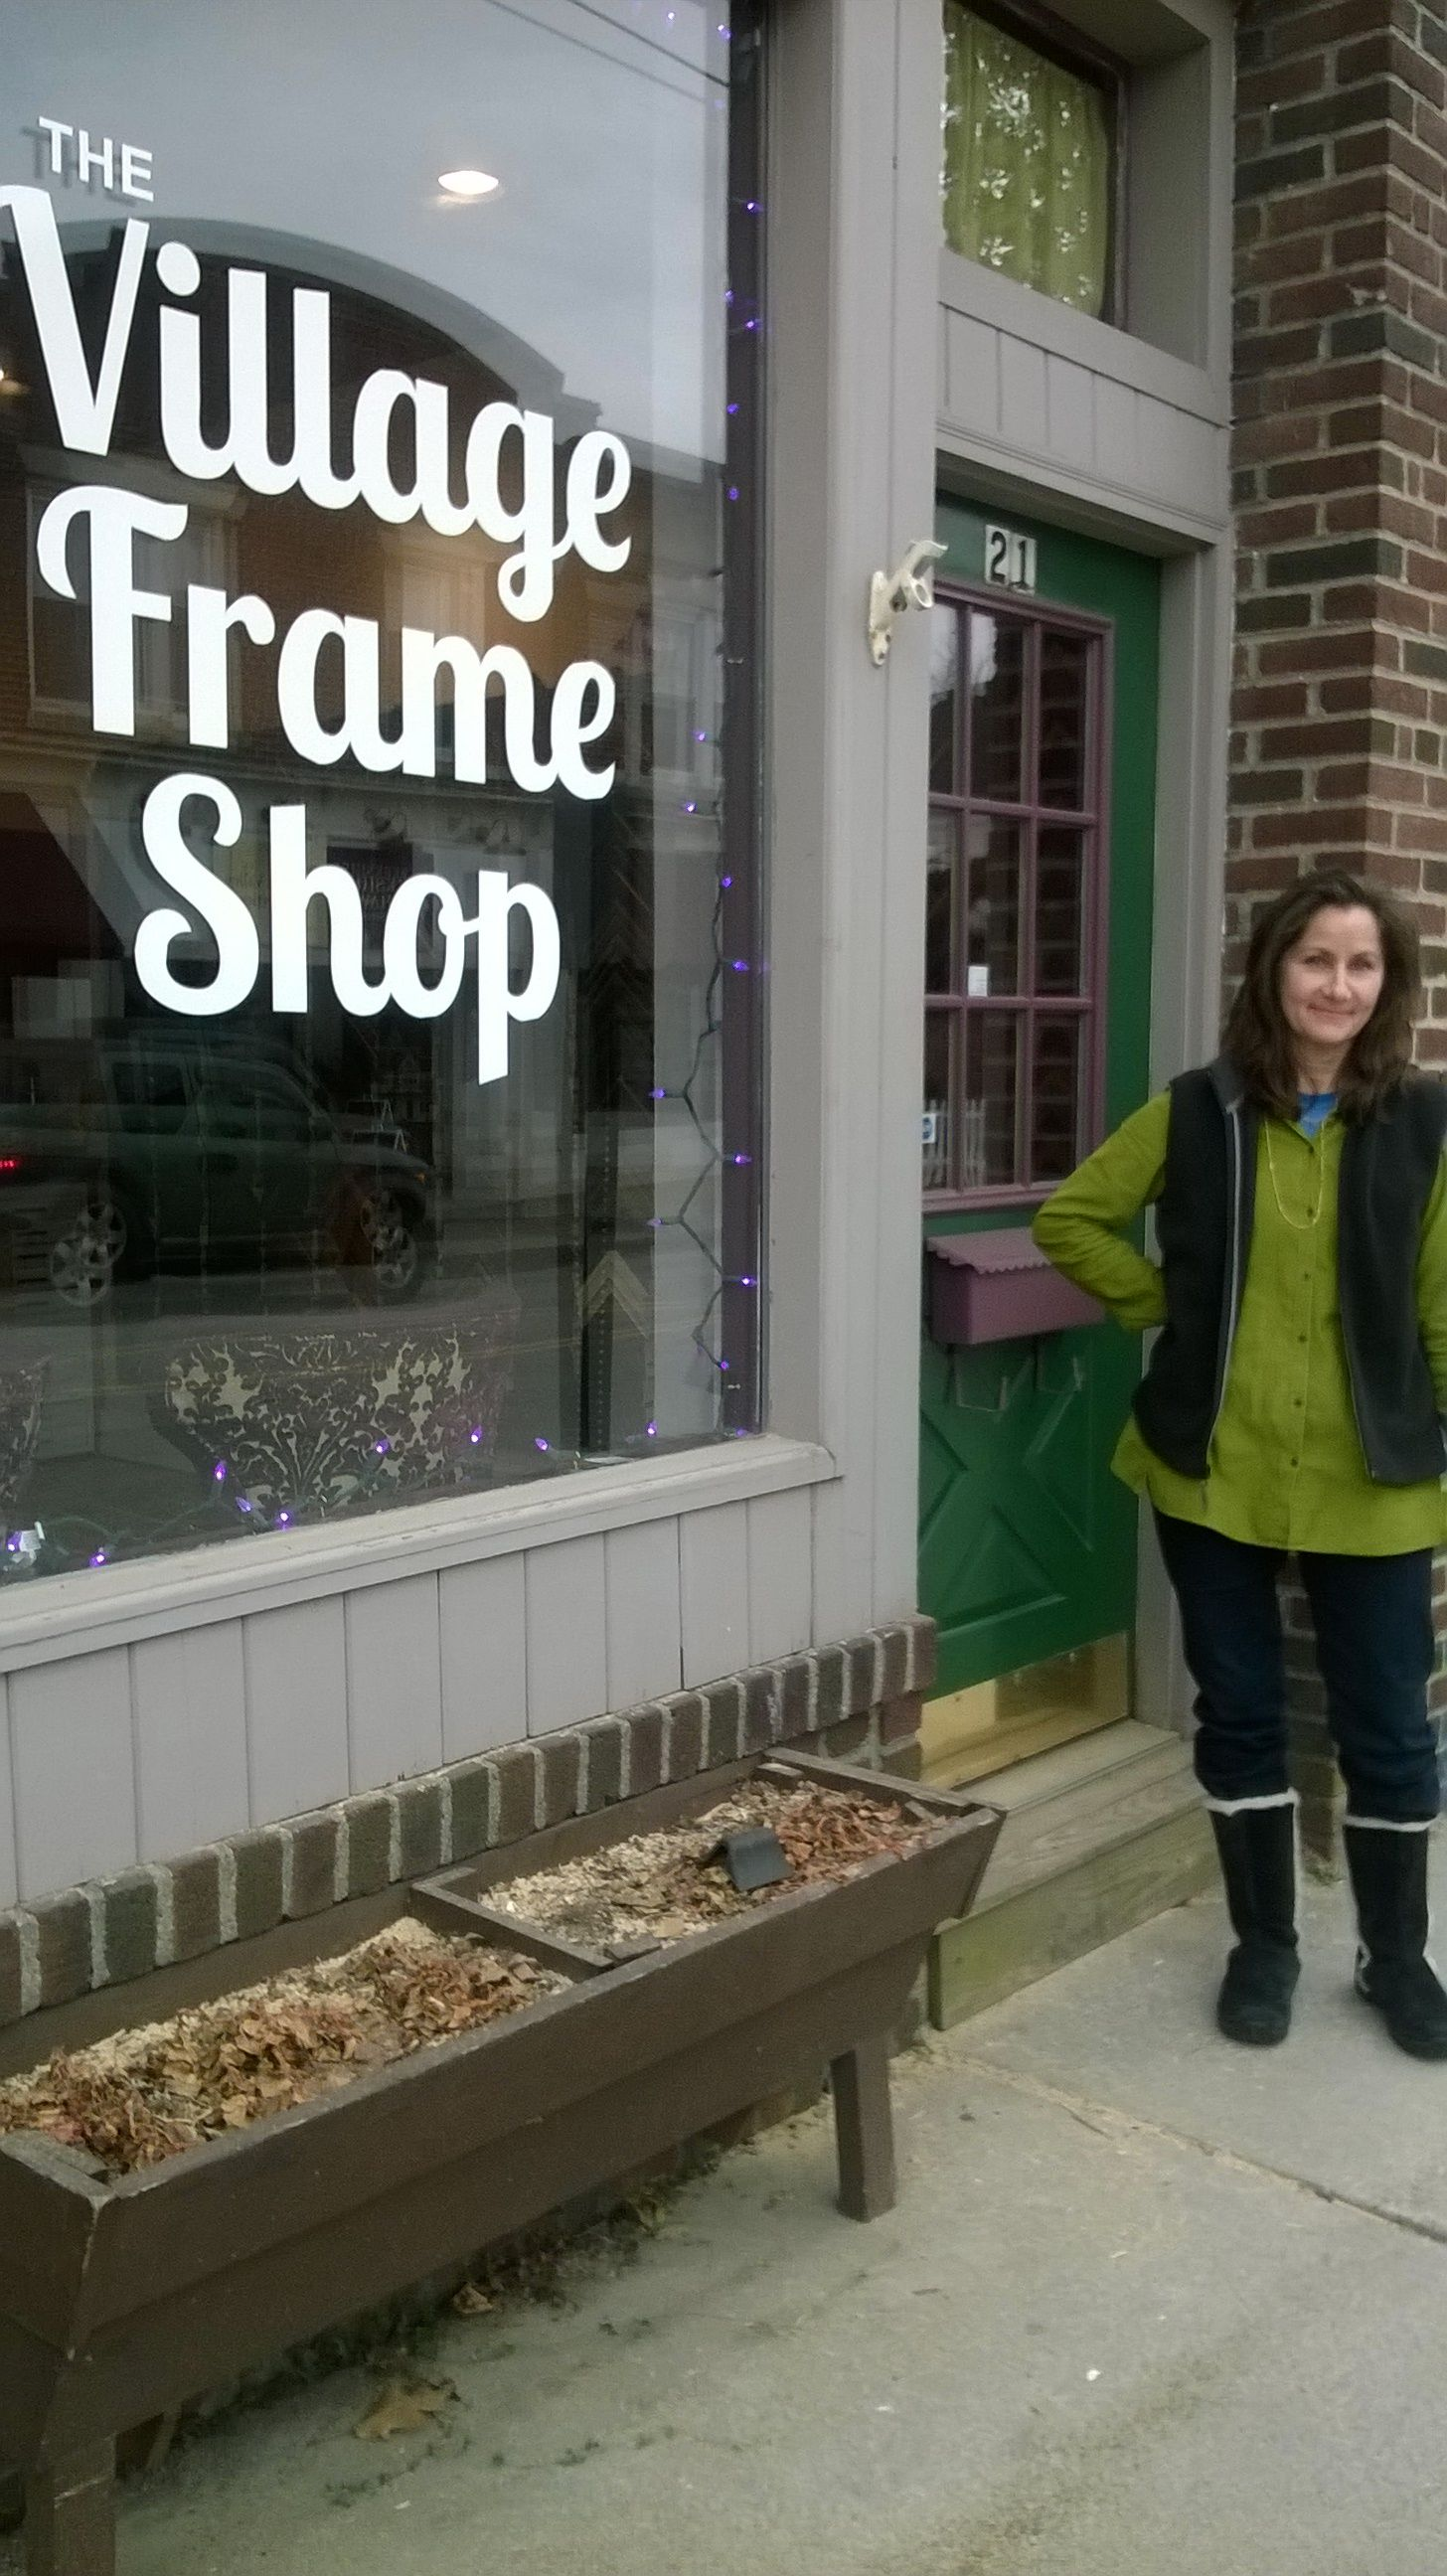 Just opening for the first day at The Village Frame Shop of Pawling ...